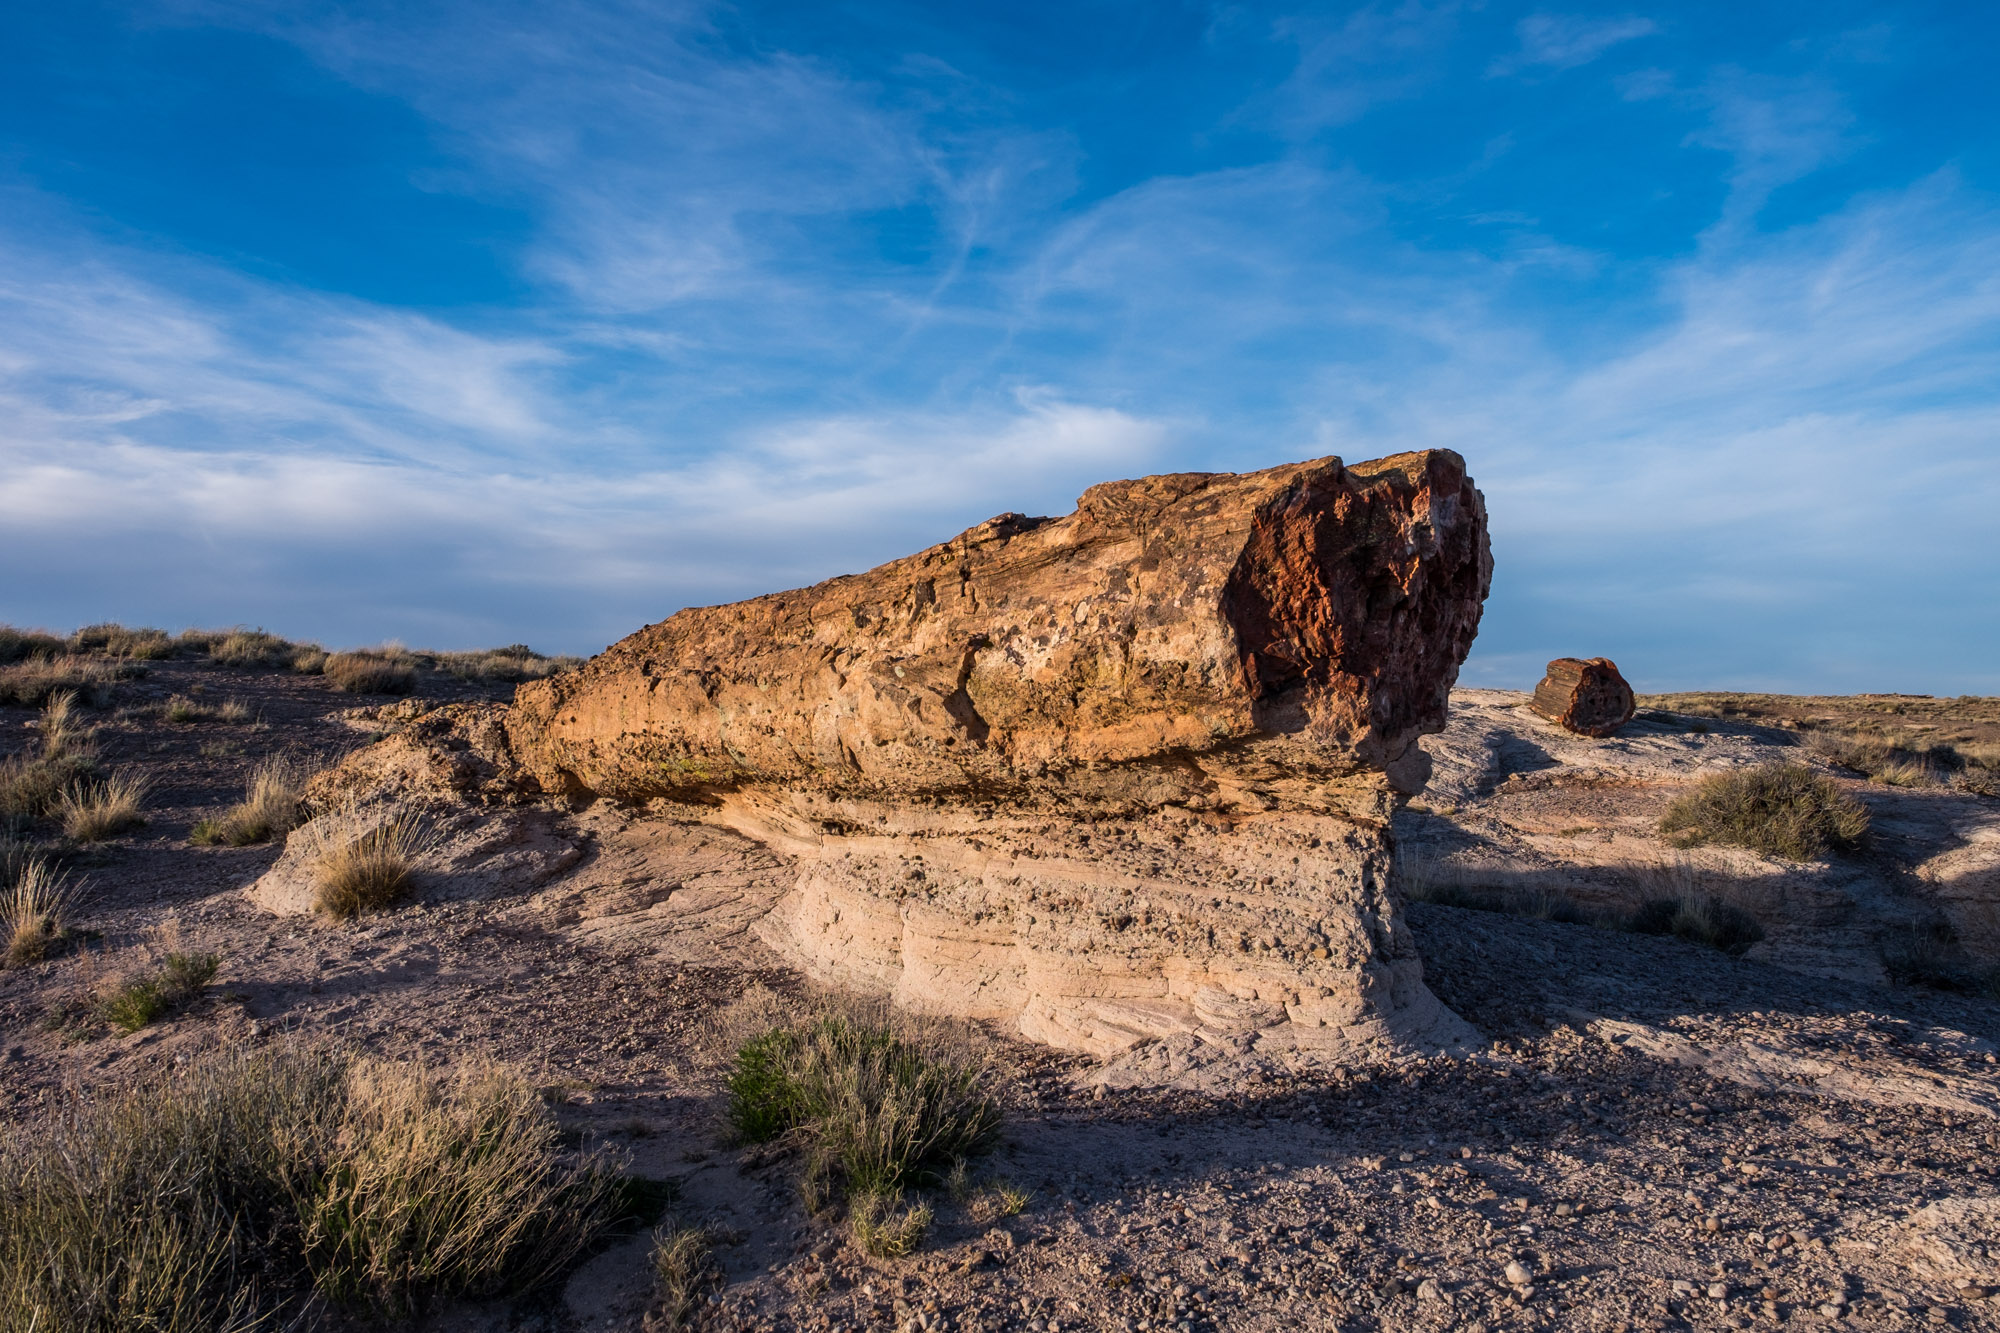 On the way to Blue Mesa you will find interesting petrified wood, suspended by sand and erosion.